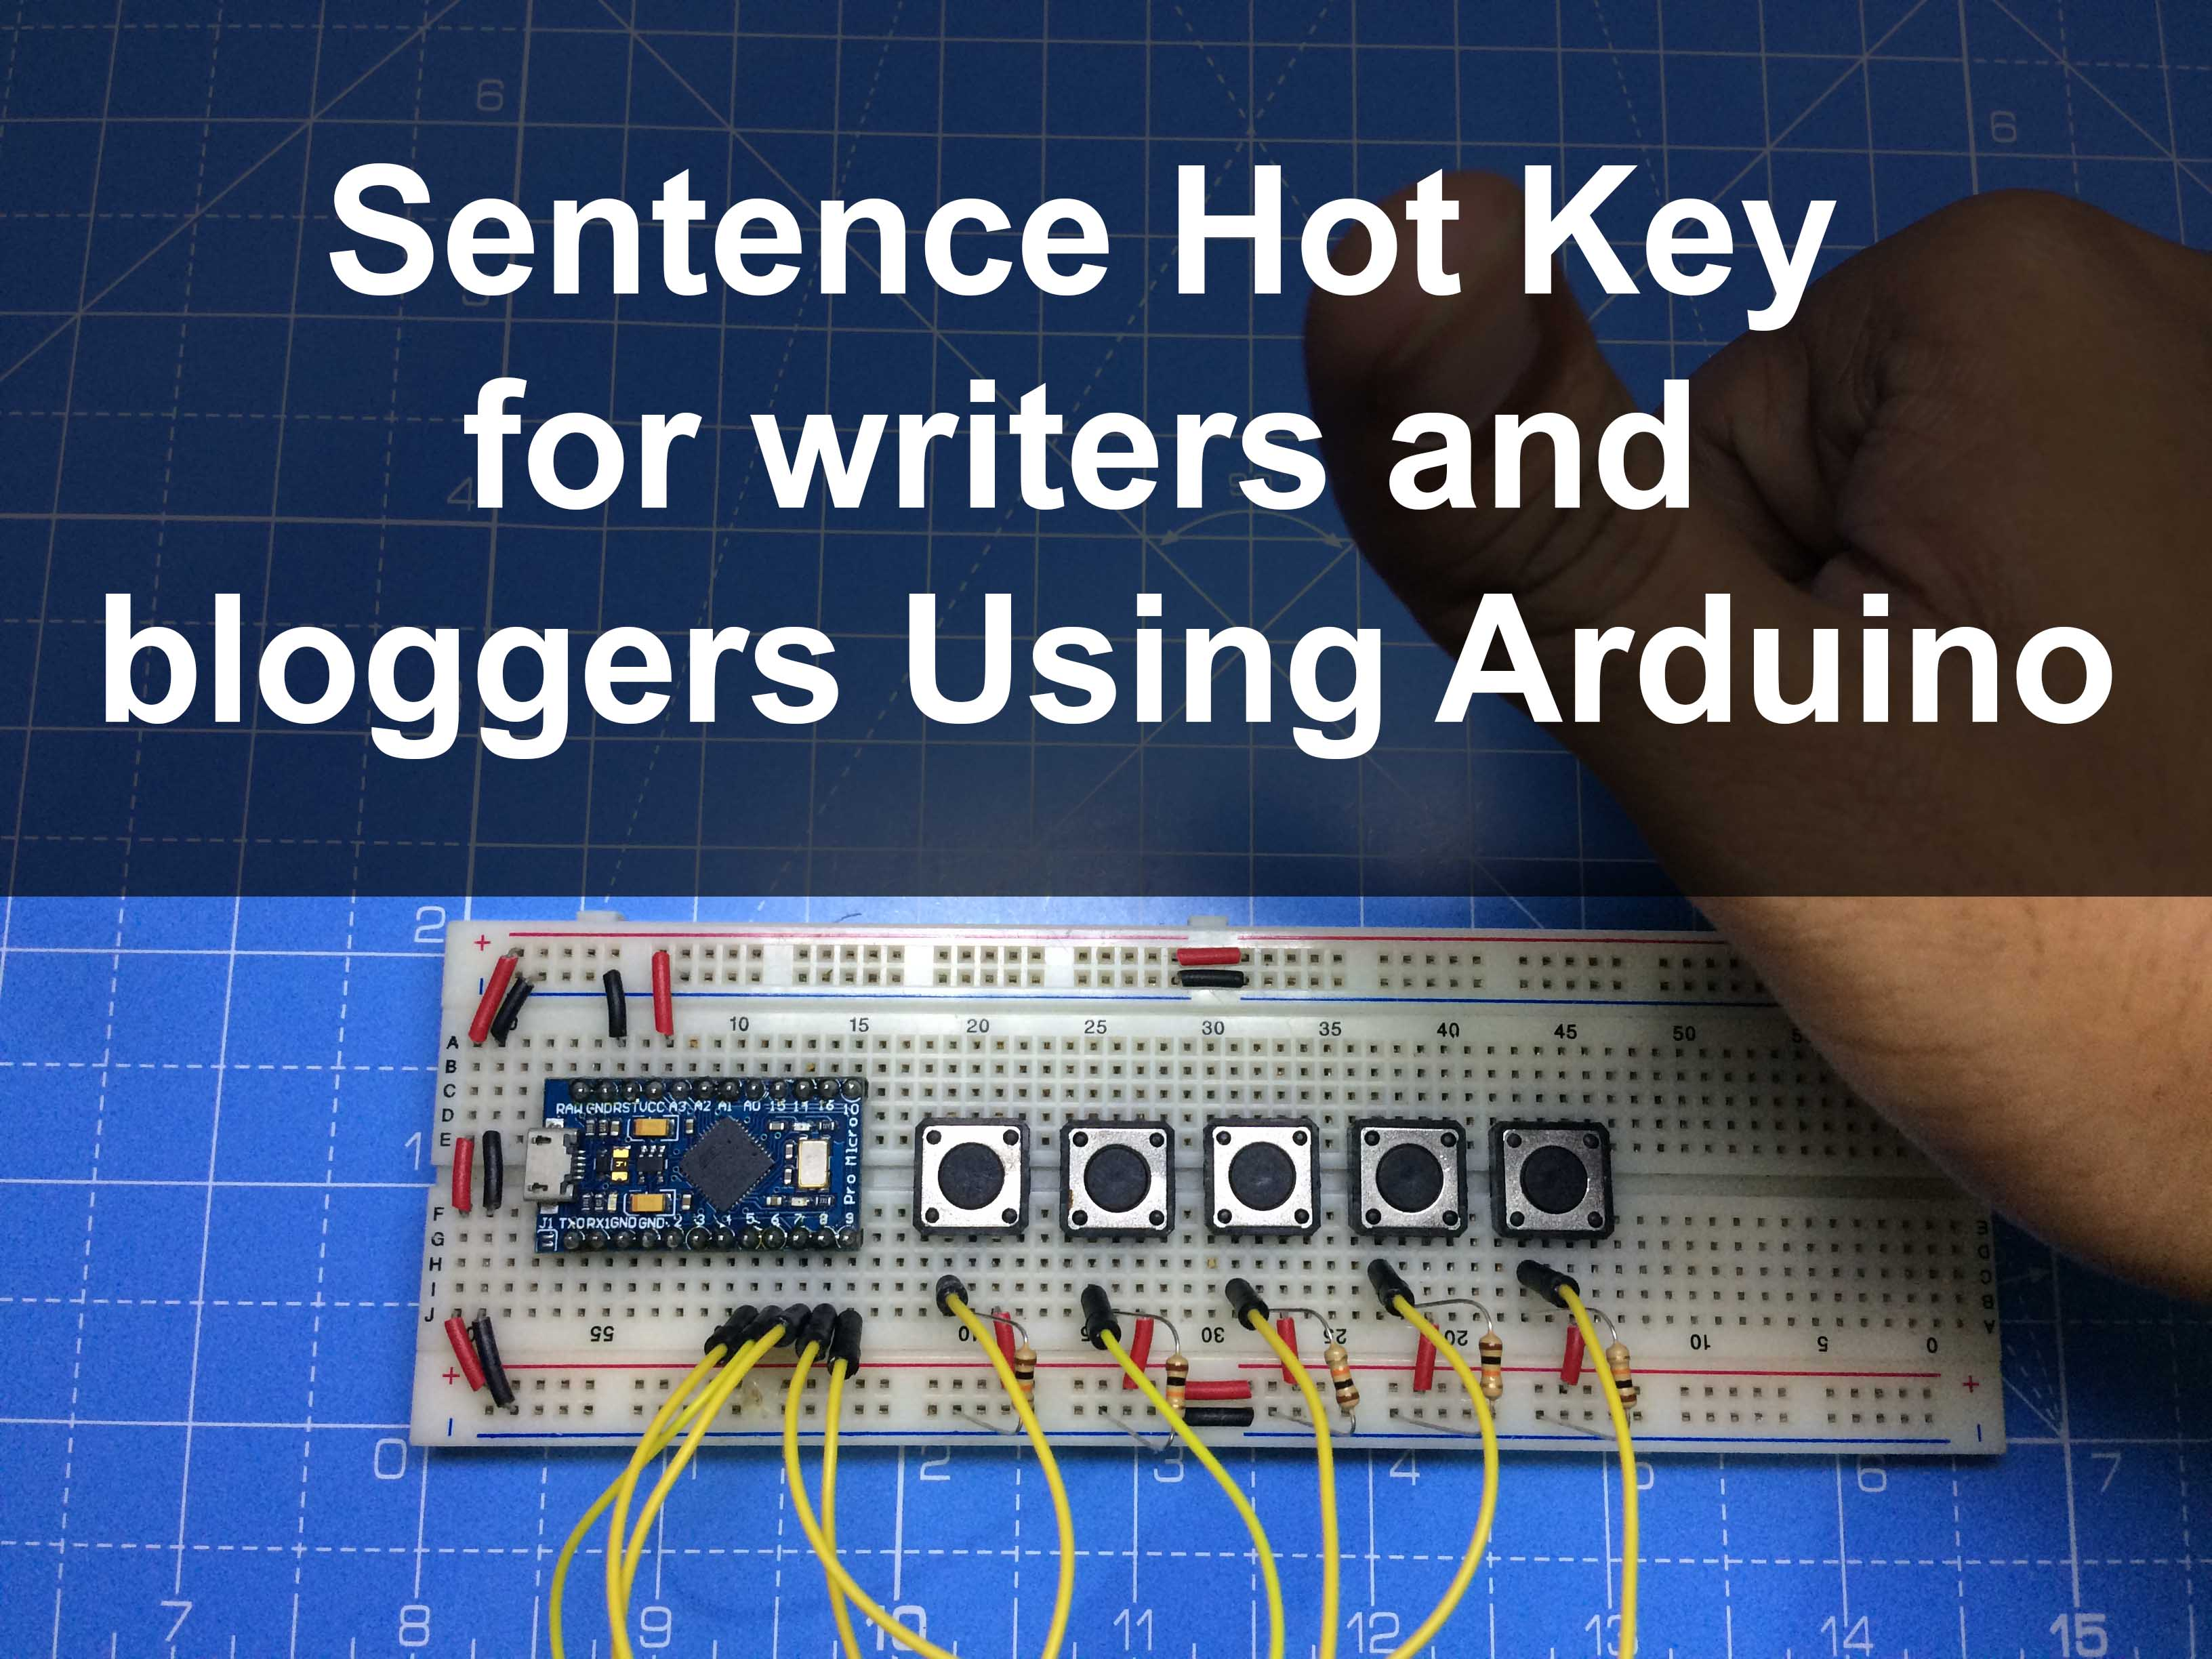 Sentence Hot Key for Writers and Bloggers Using Arduino